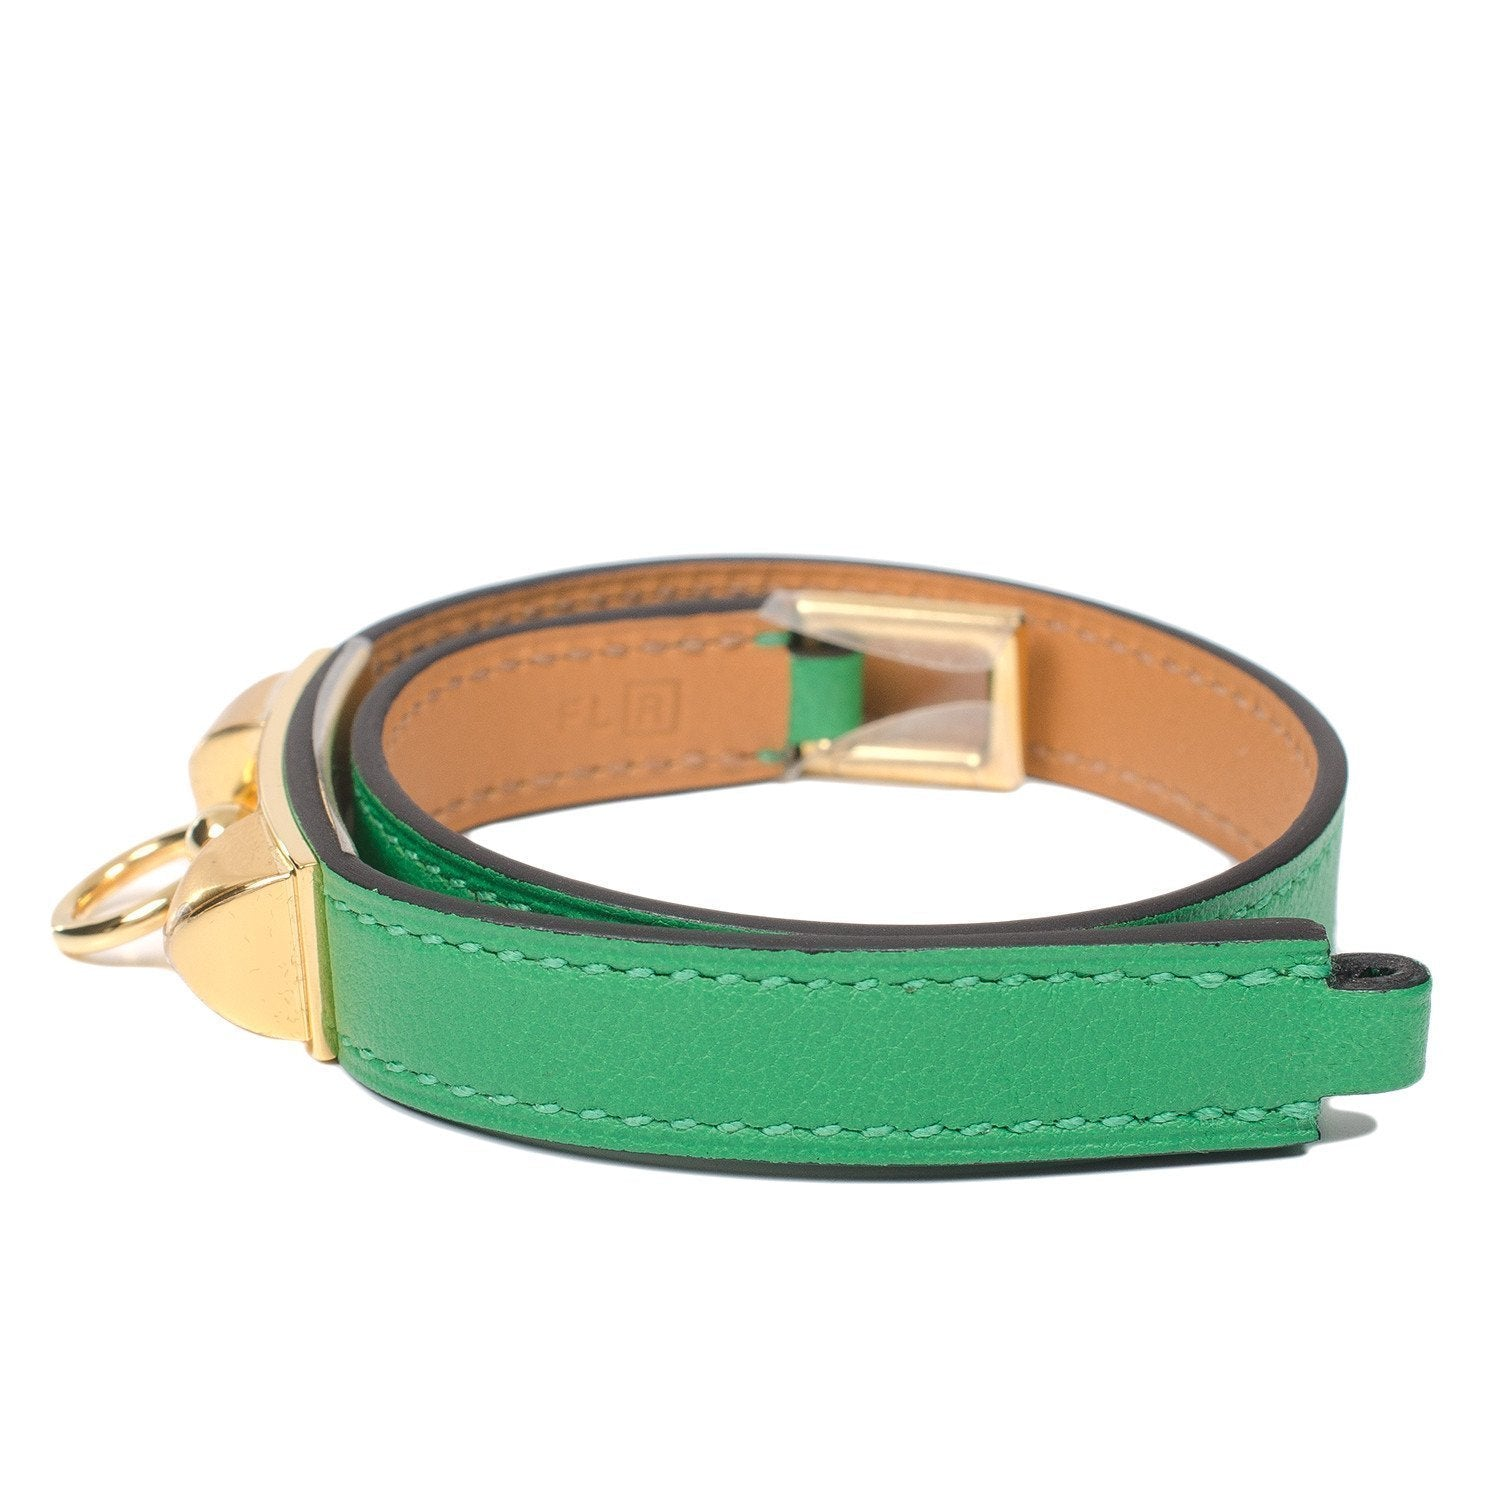 Hermes Bamboo Calfskin Leather Double Wrap Rivale Bracelet Accessories